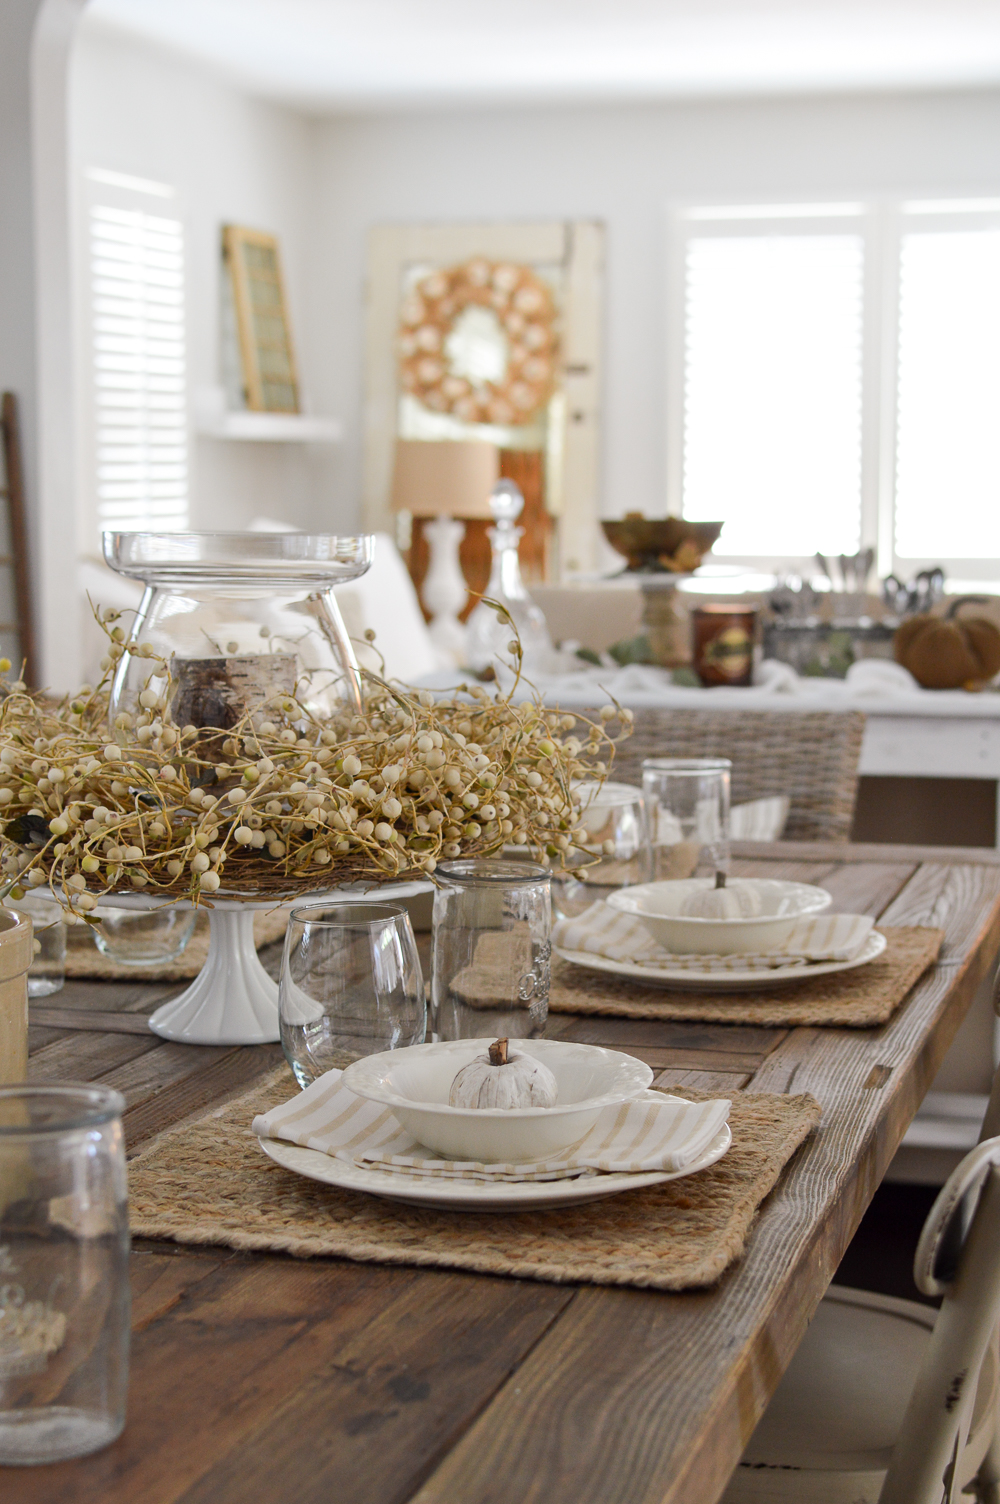 Simple Summer to Fall Dining Room Decorating Ideas that are Easy - Neutral farm table setting